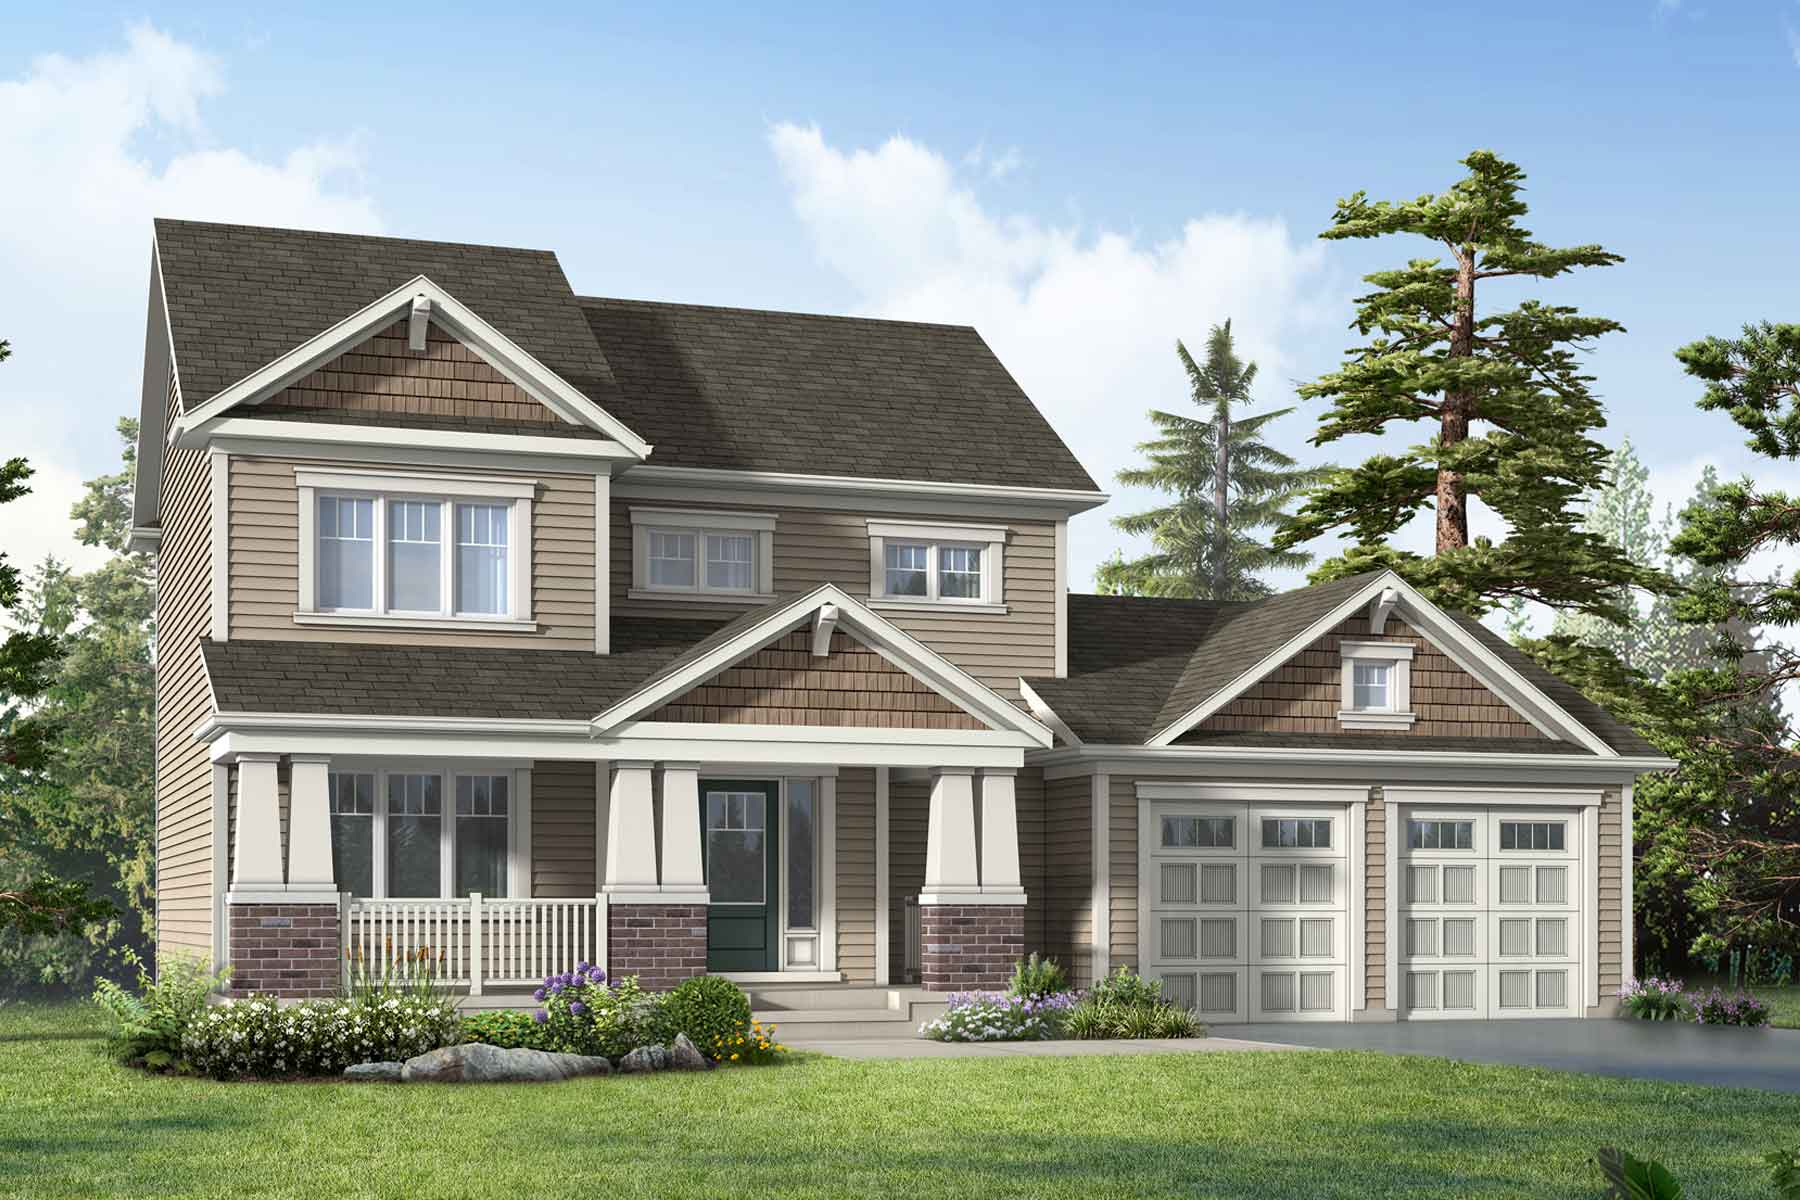 Aspen Plan Elevation Front at White Pines in Bracebridge Ontario by Mattamy Homes